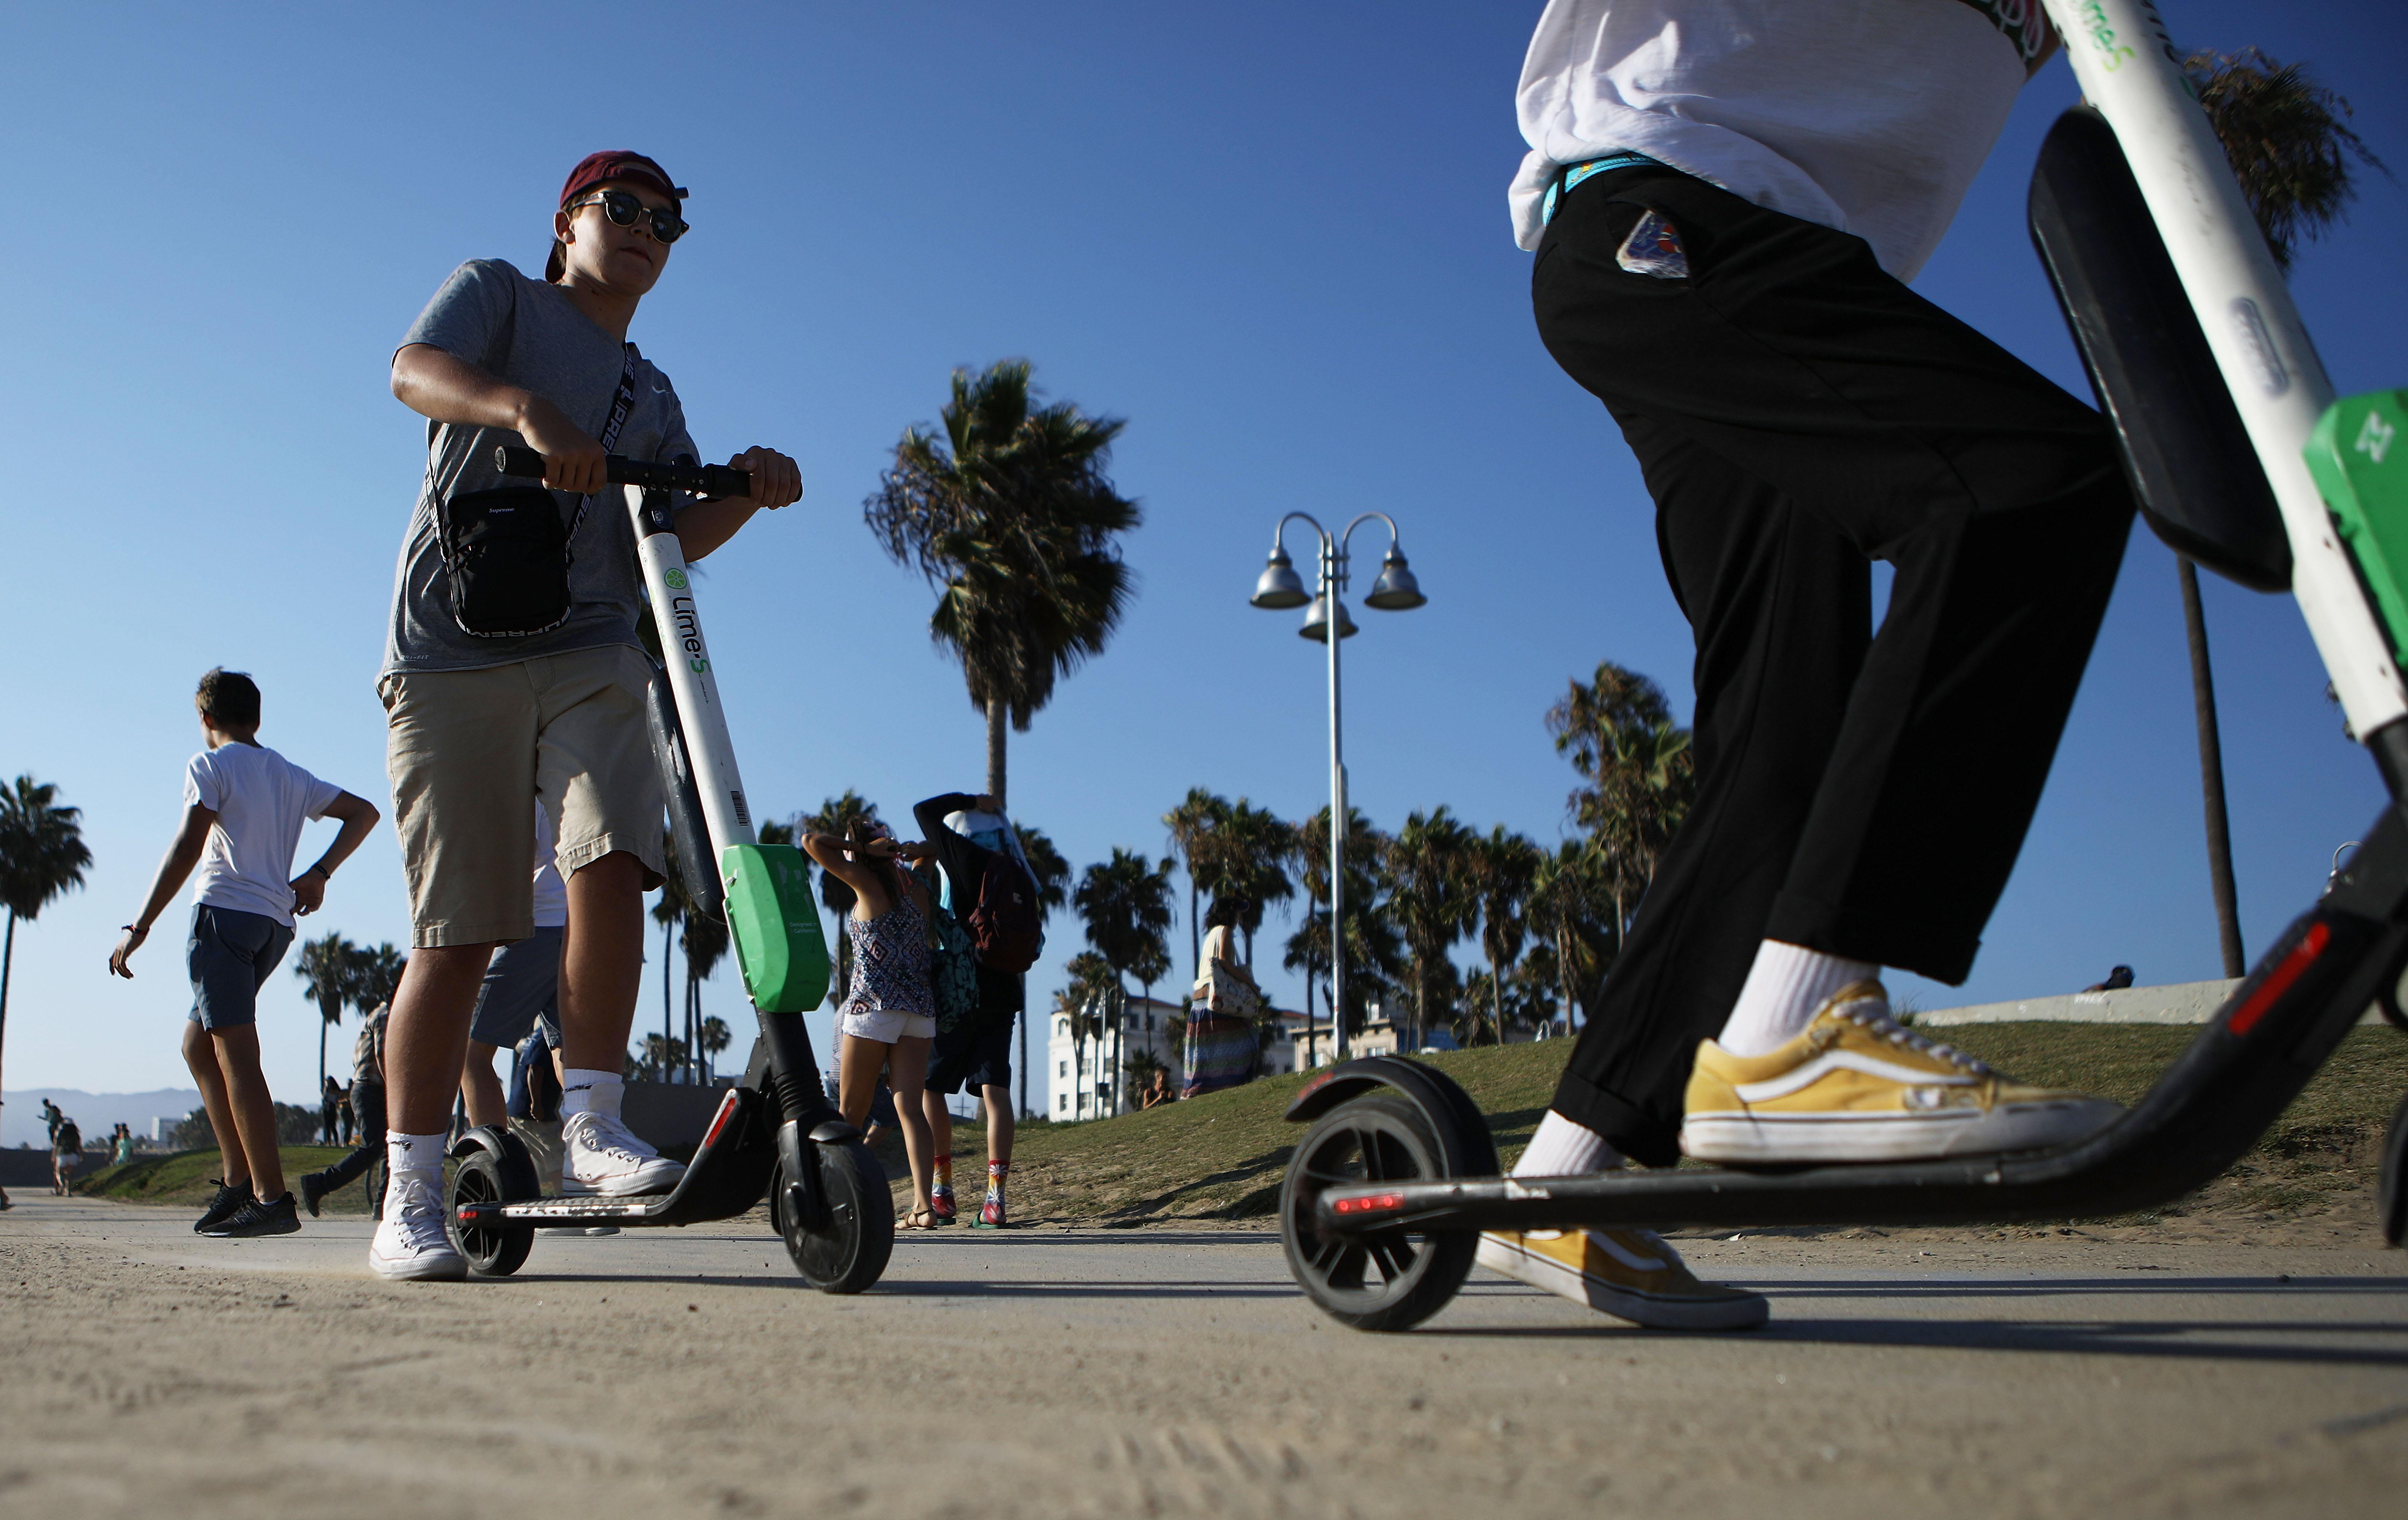 Two people ride Lime shared dockless electric scooters along Venice Beach on August 13, 2018 in Los Angeles, California.